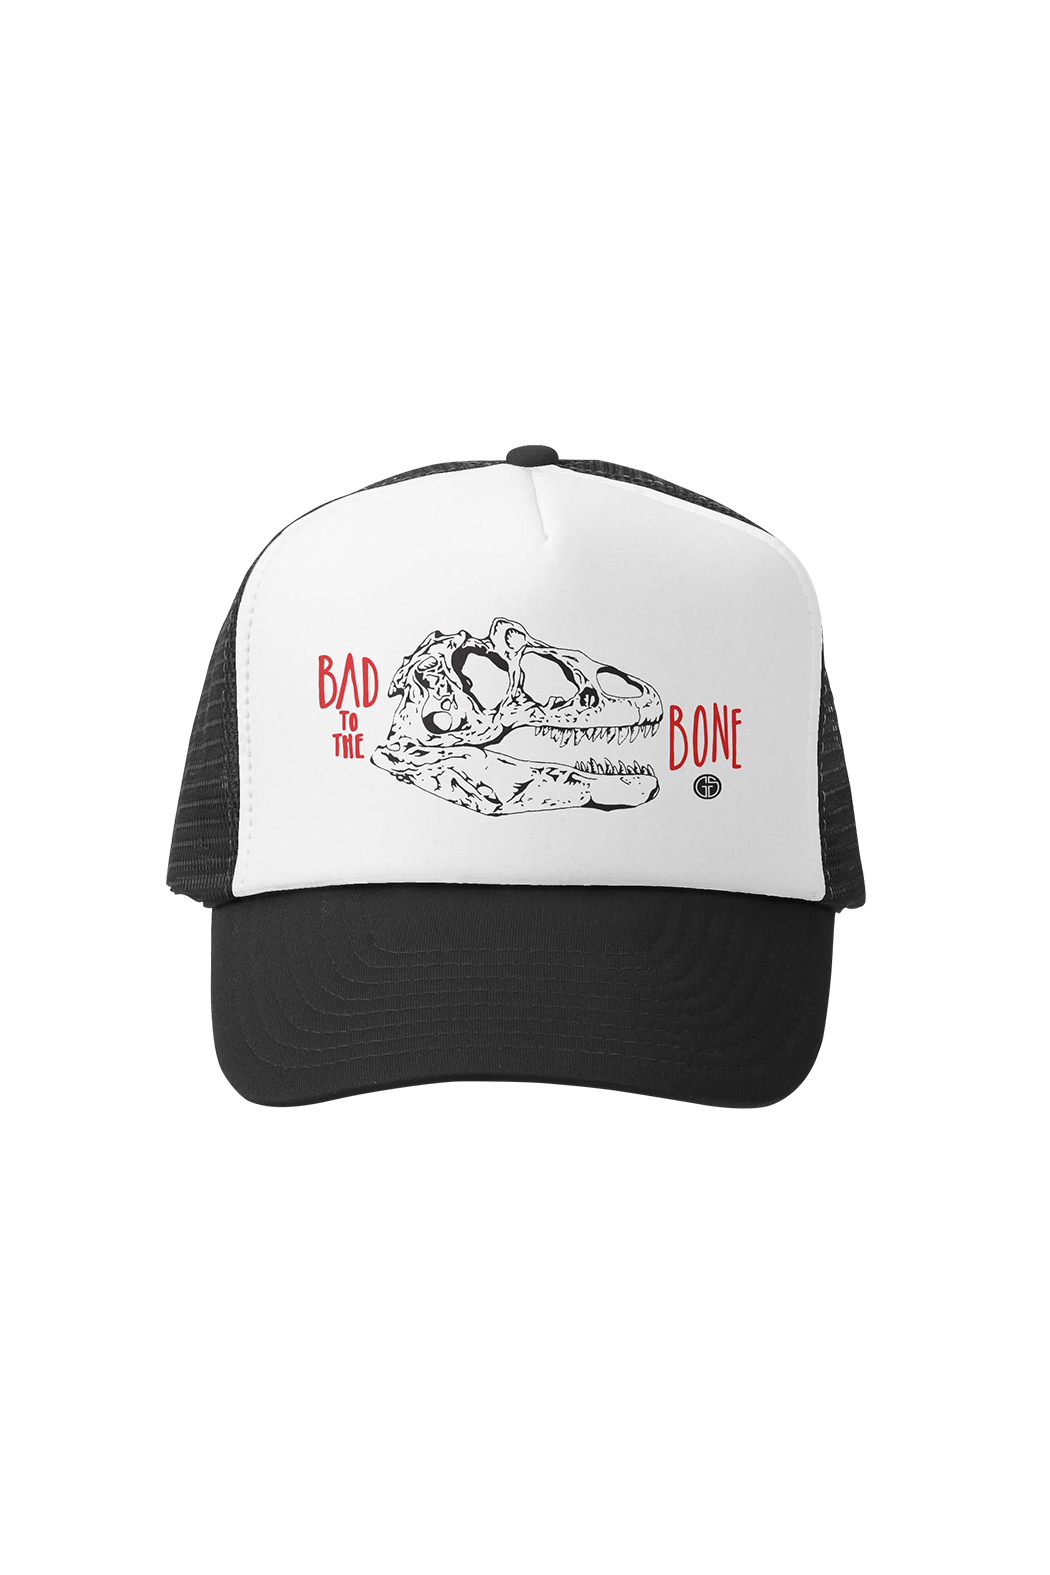 Grom Squad Bad to the Bone Trucker Hat - Main Image